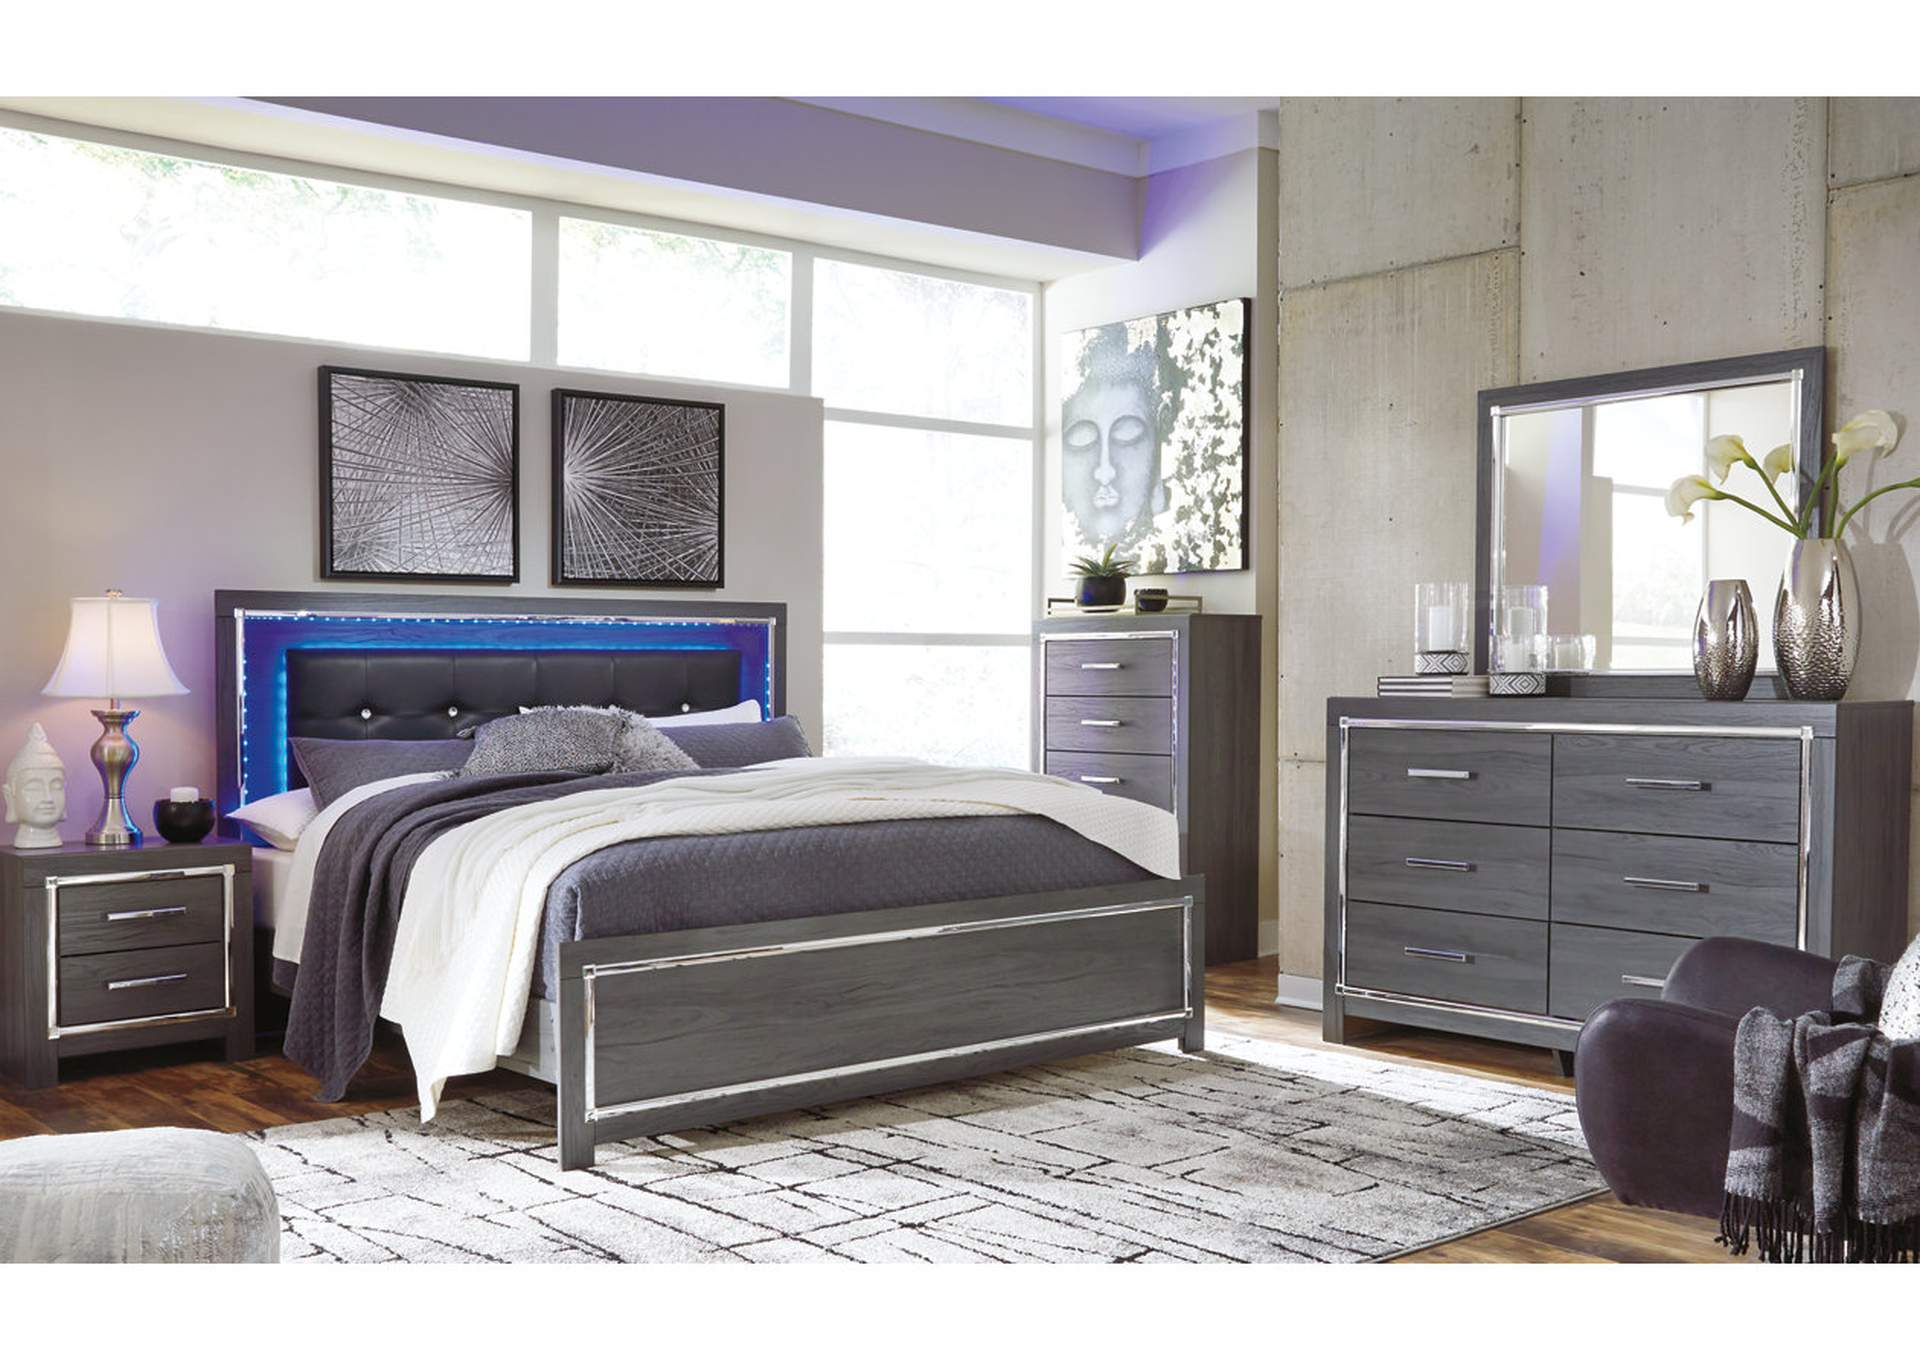 Lodanna Gray Full Panel Bed w/Dresser & Mirror,Signature Design By Ashley